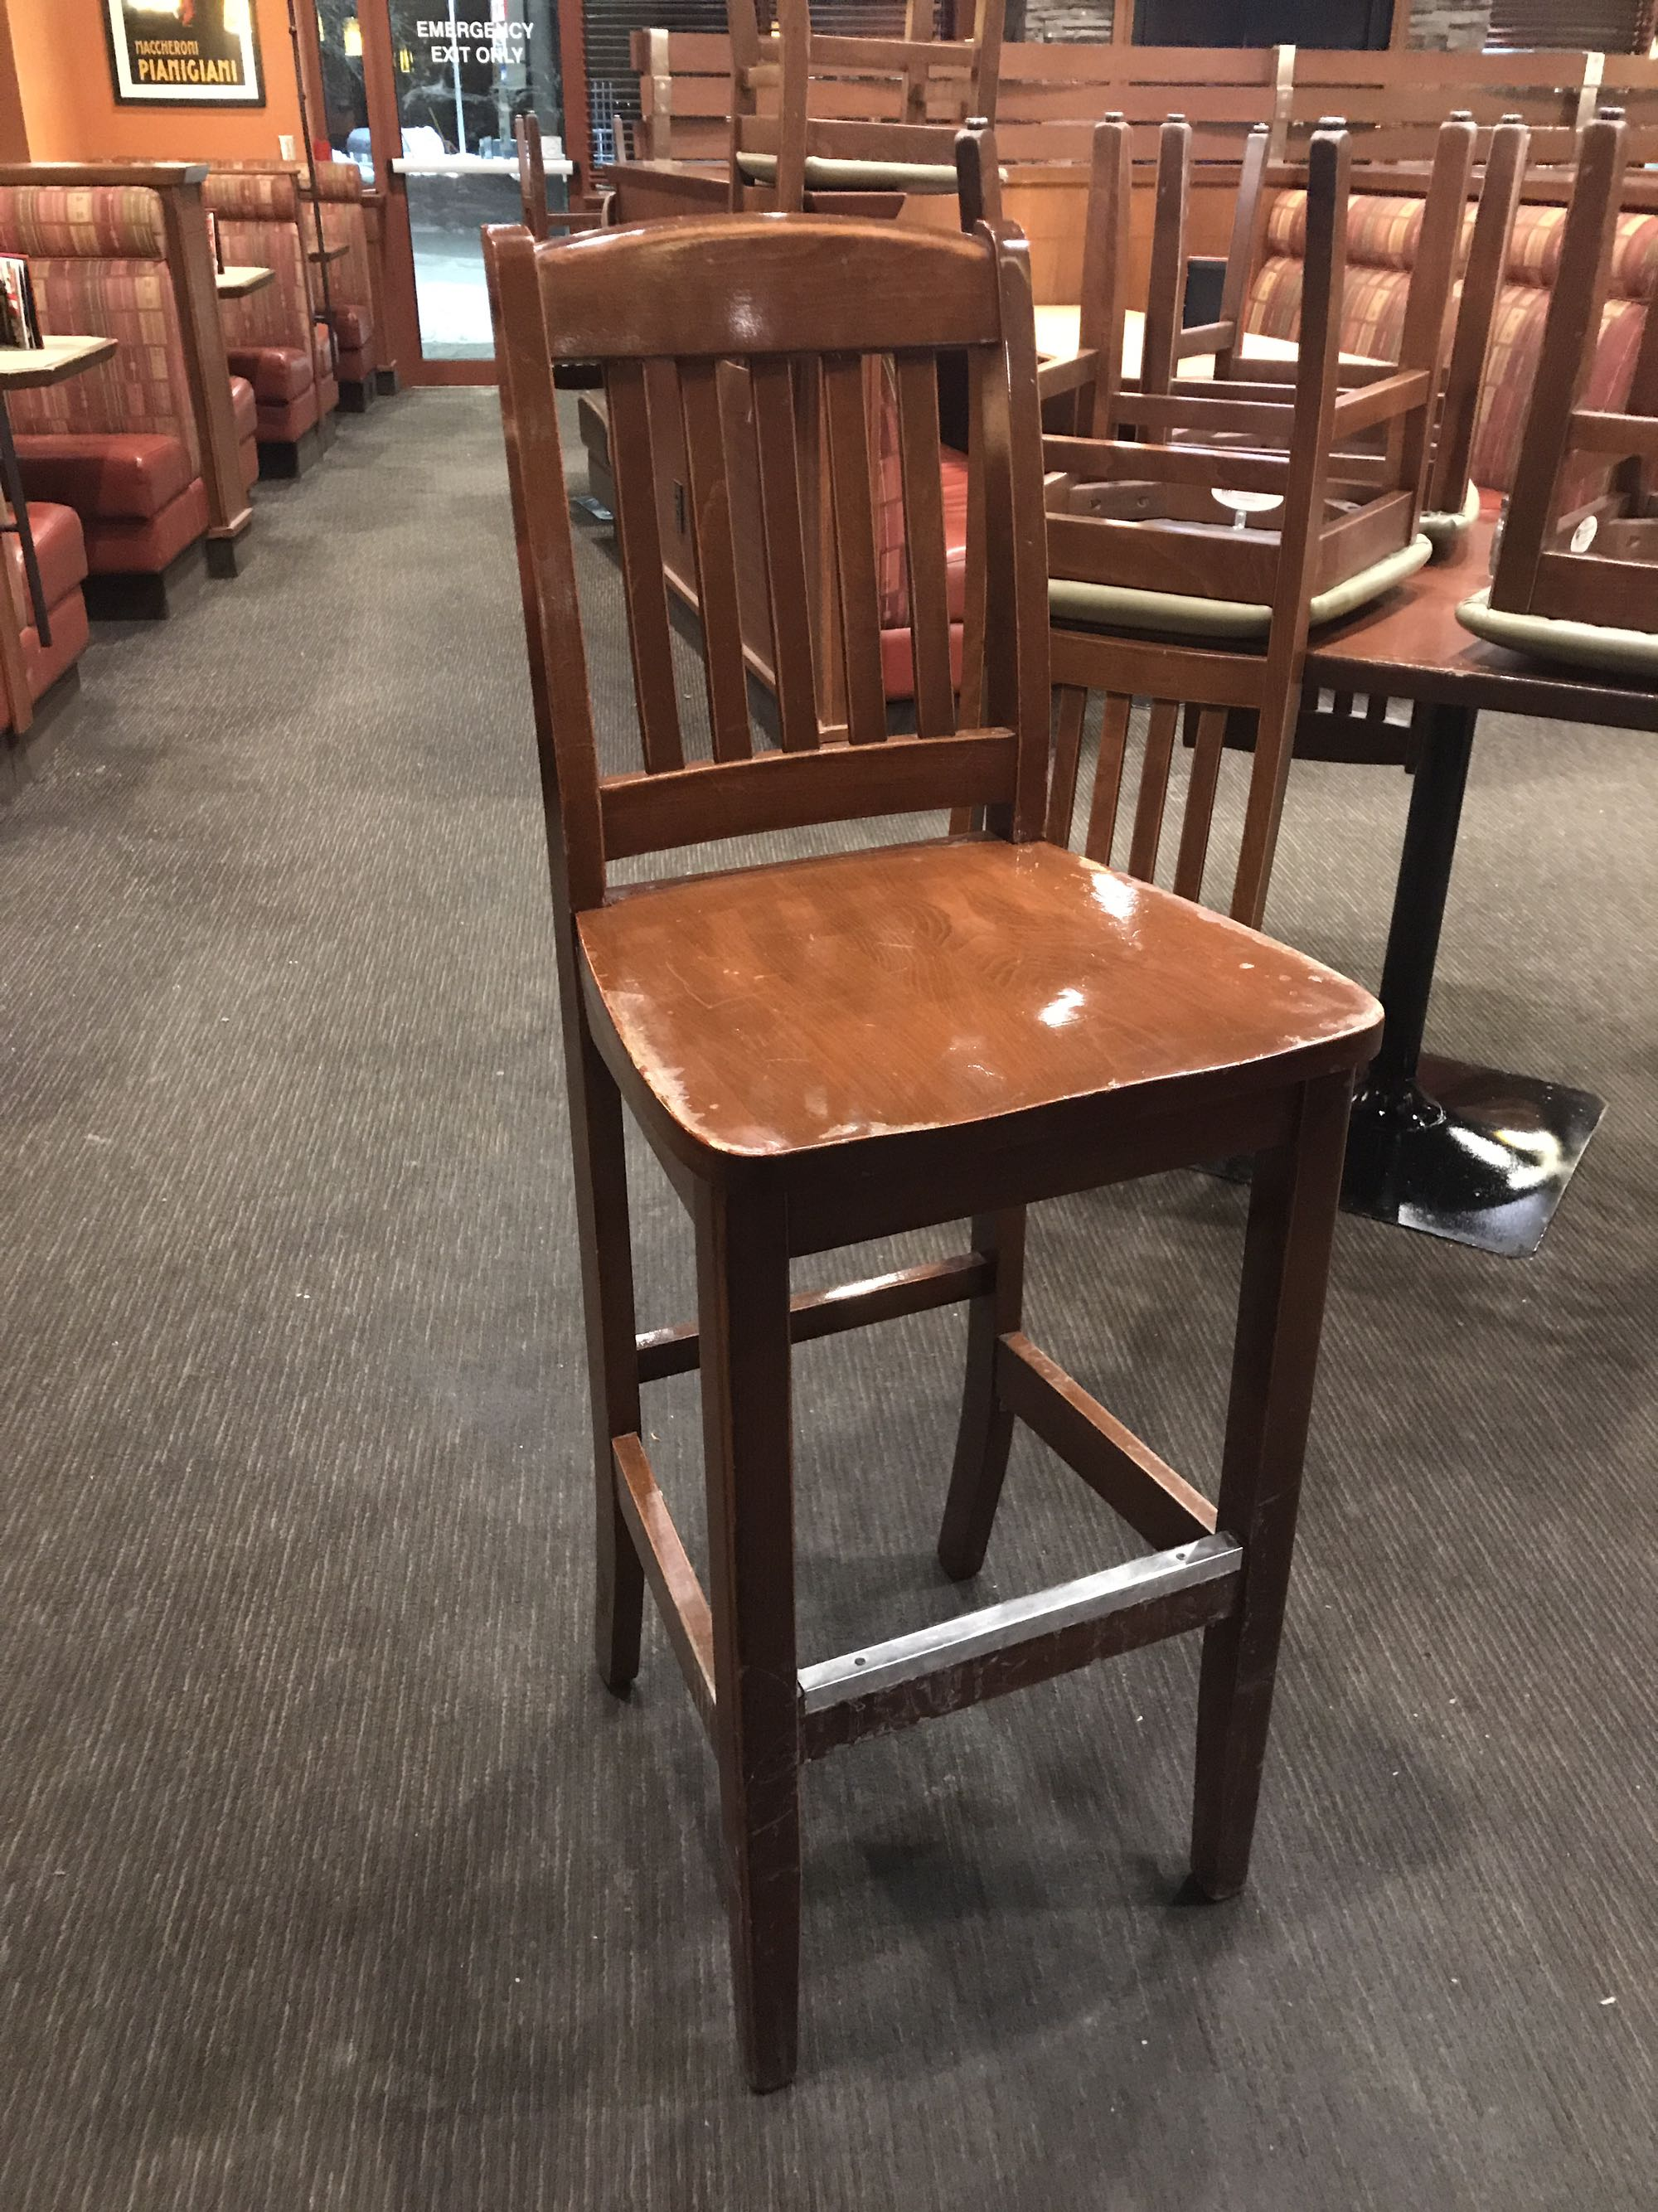 High top bar chairs